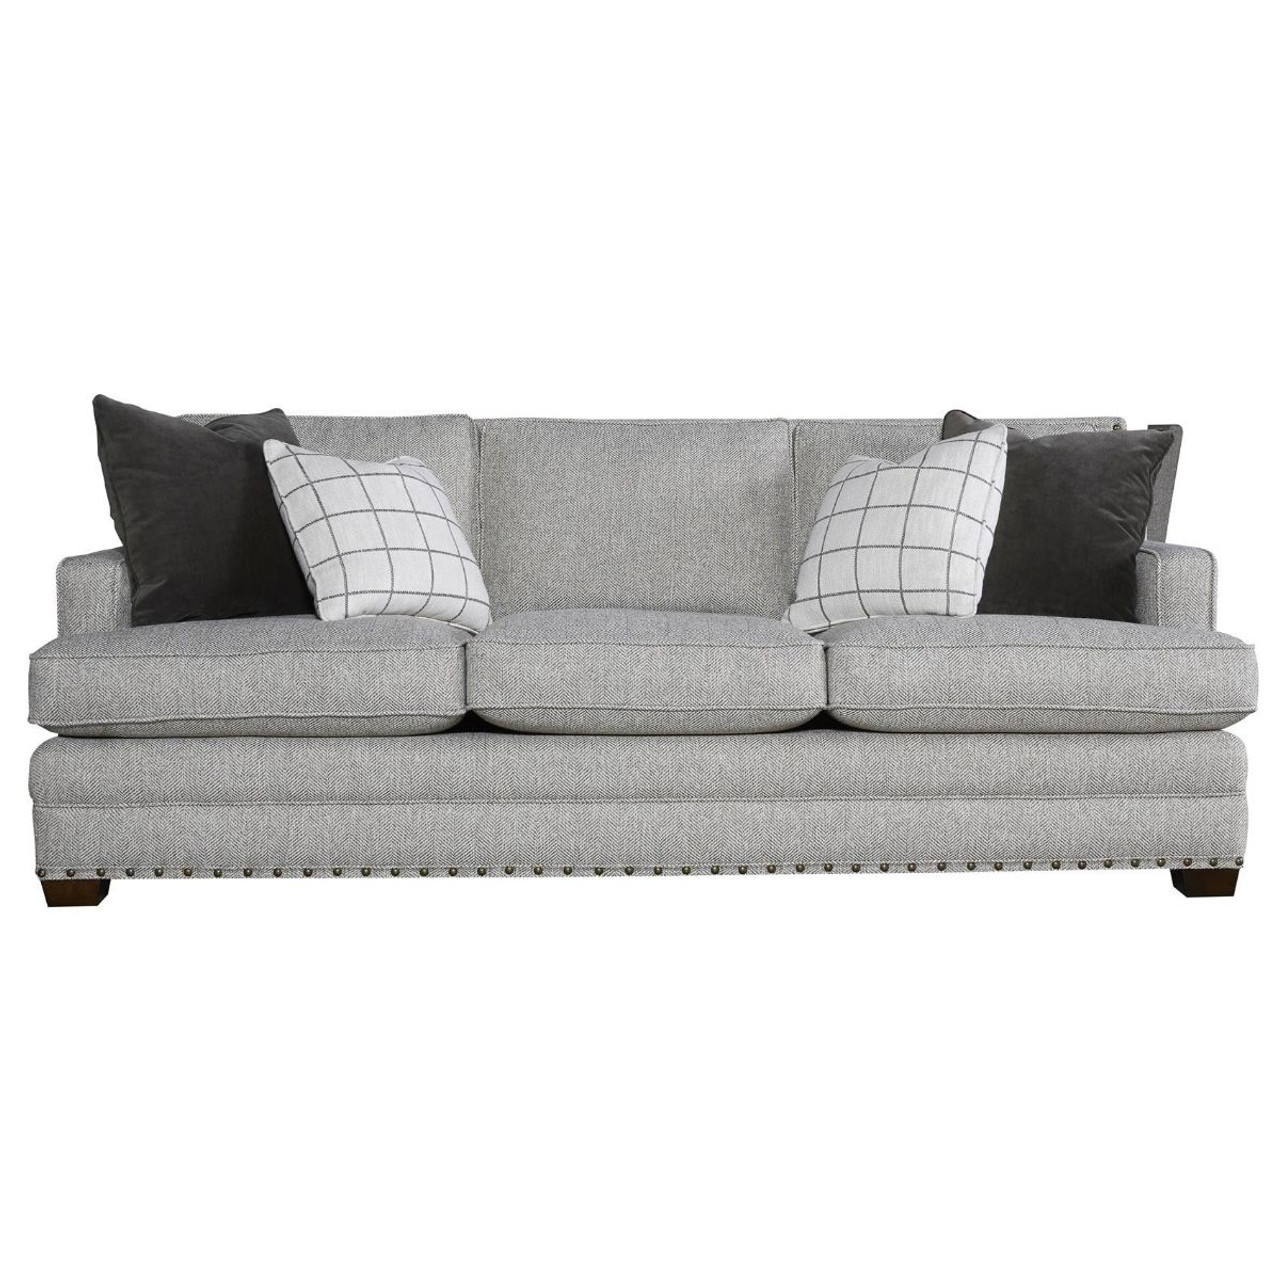 Riley Upholstered 3-Seat Sofa with Nailheads | Zin Home